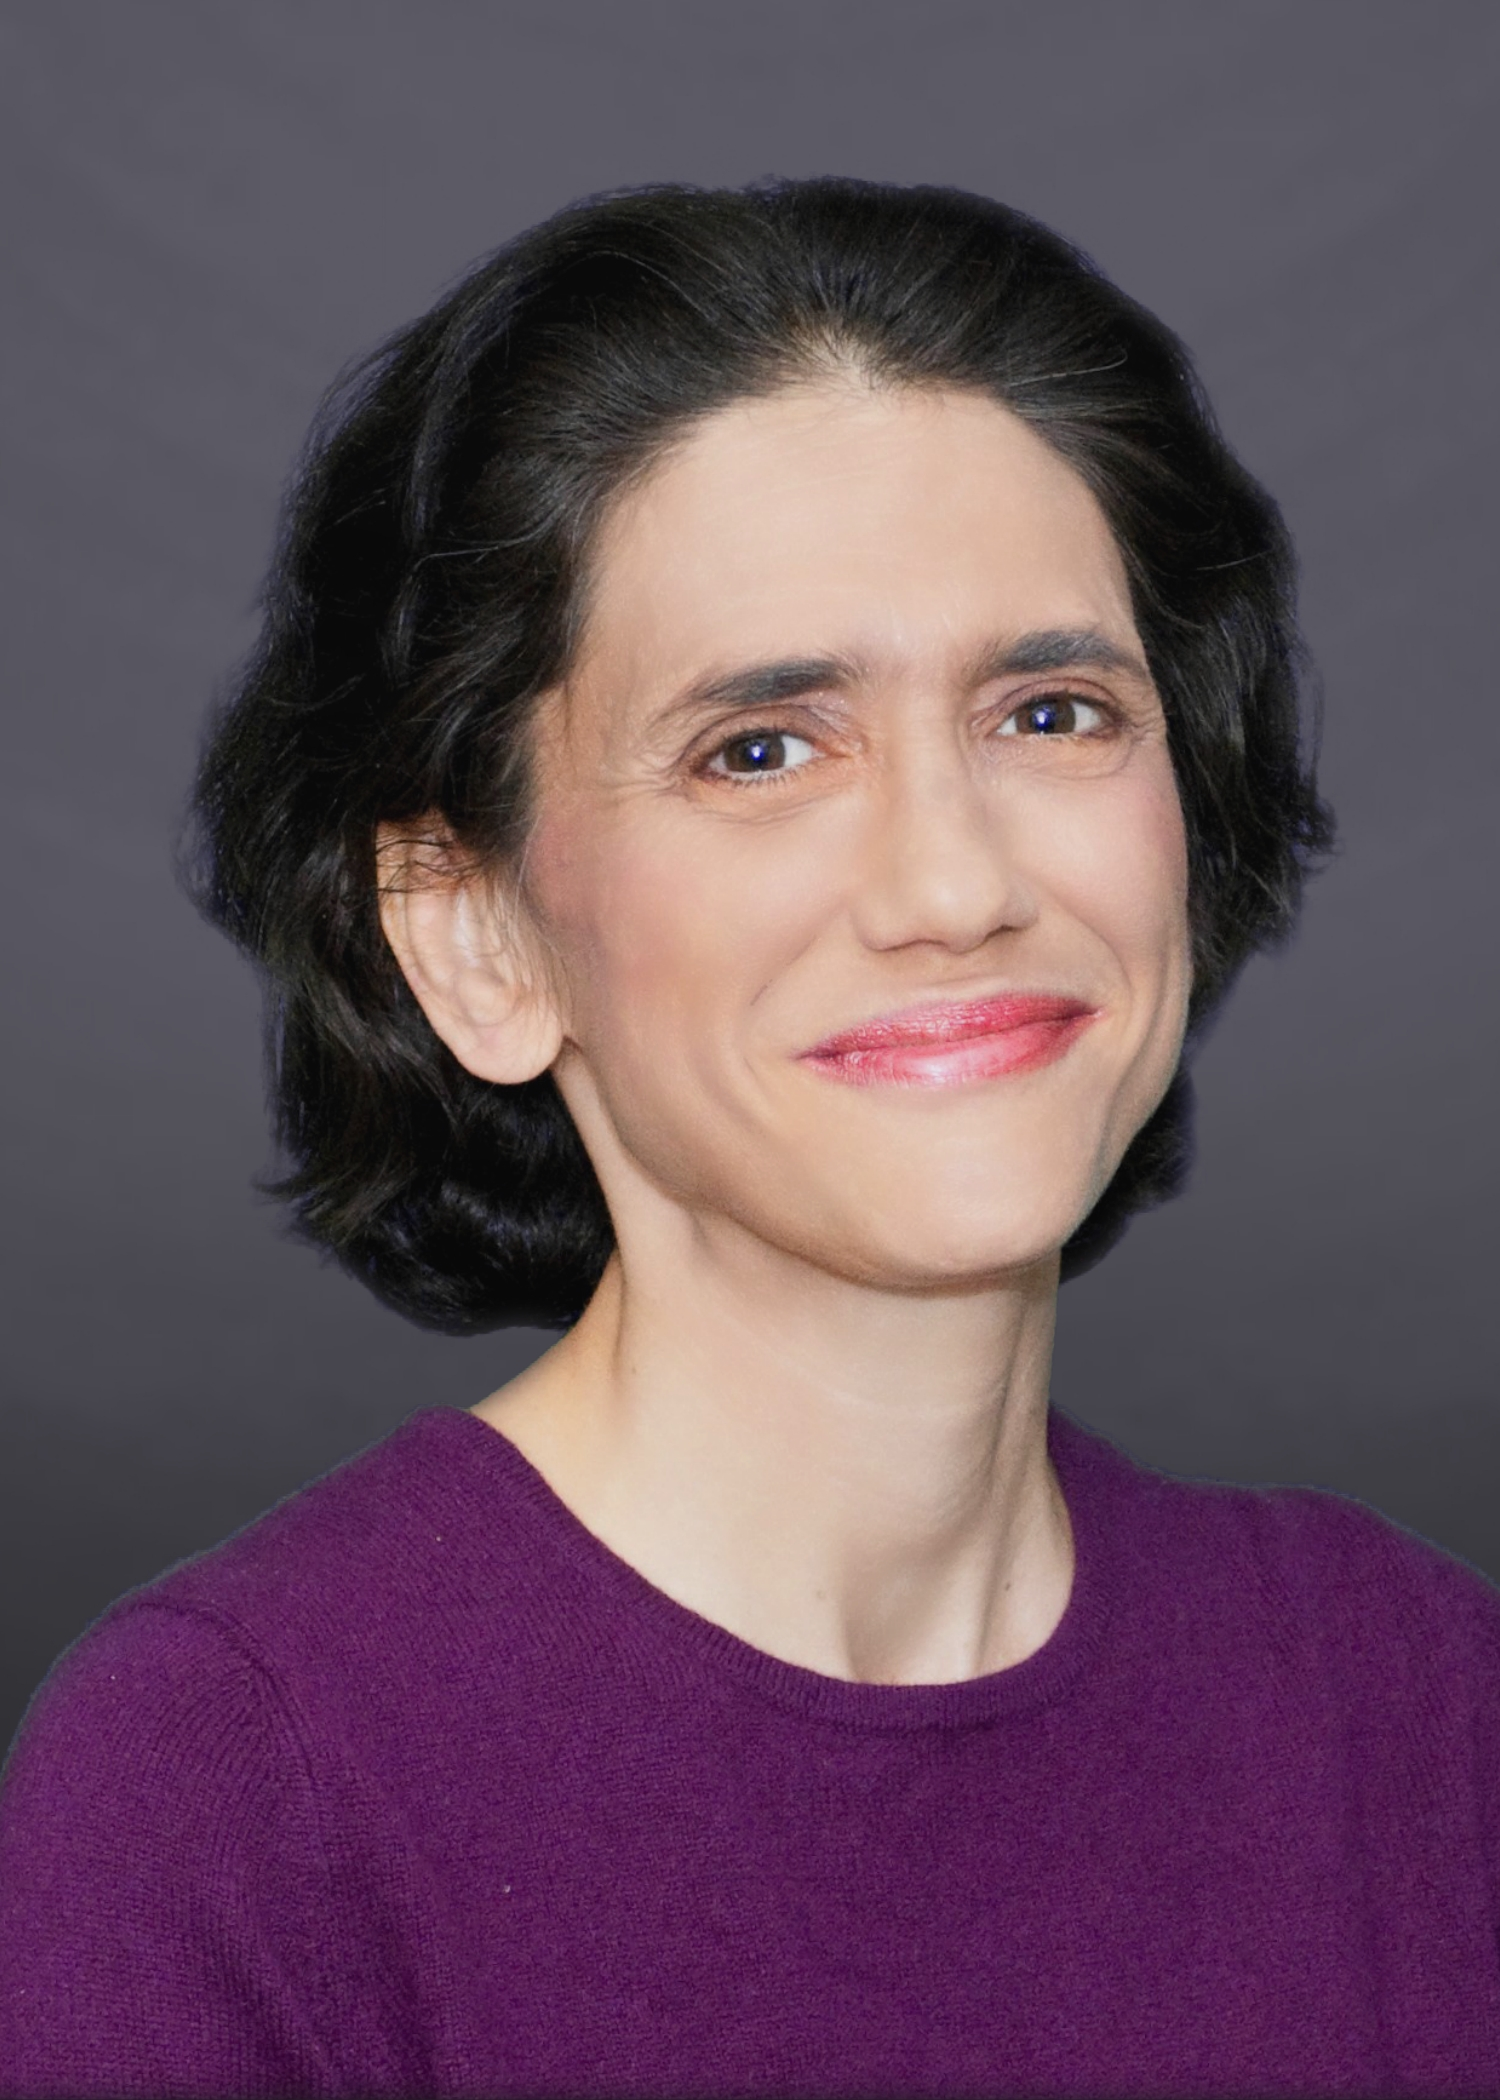 Jennifer Rubin (actress) Jennifer Rubin (actress) new picture